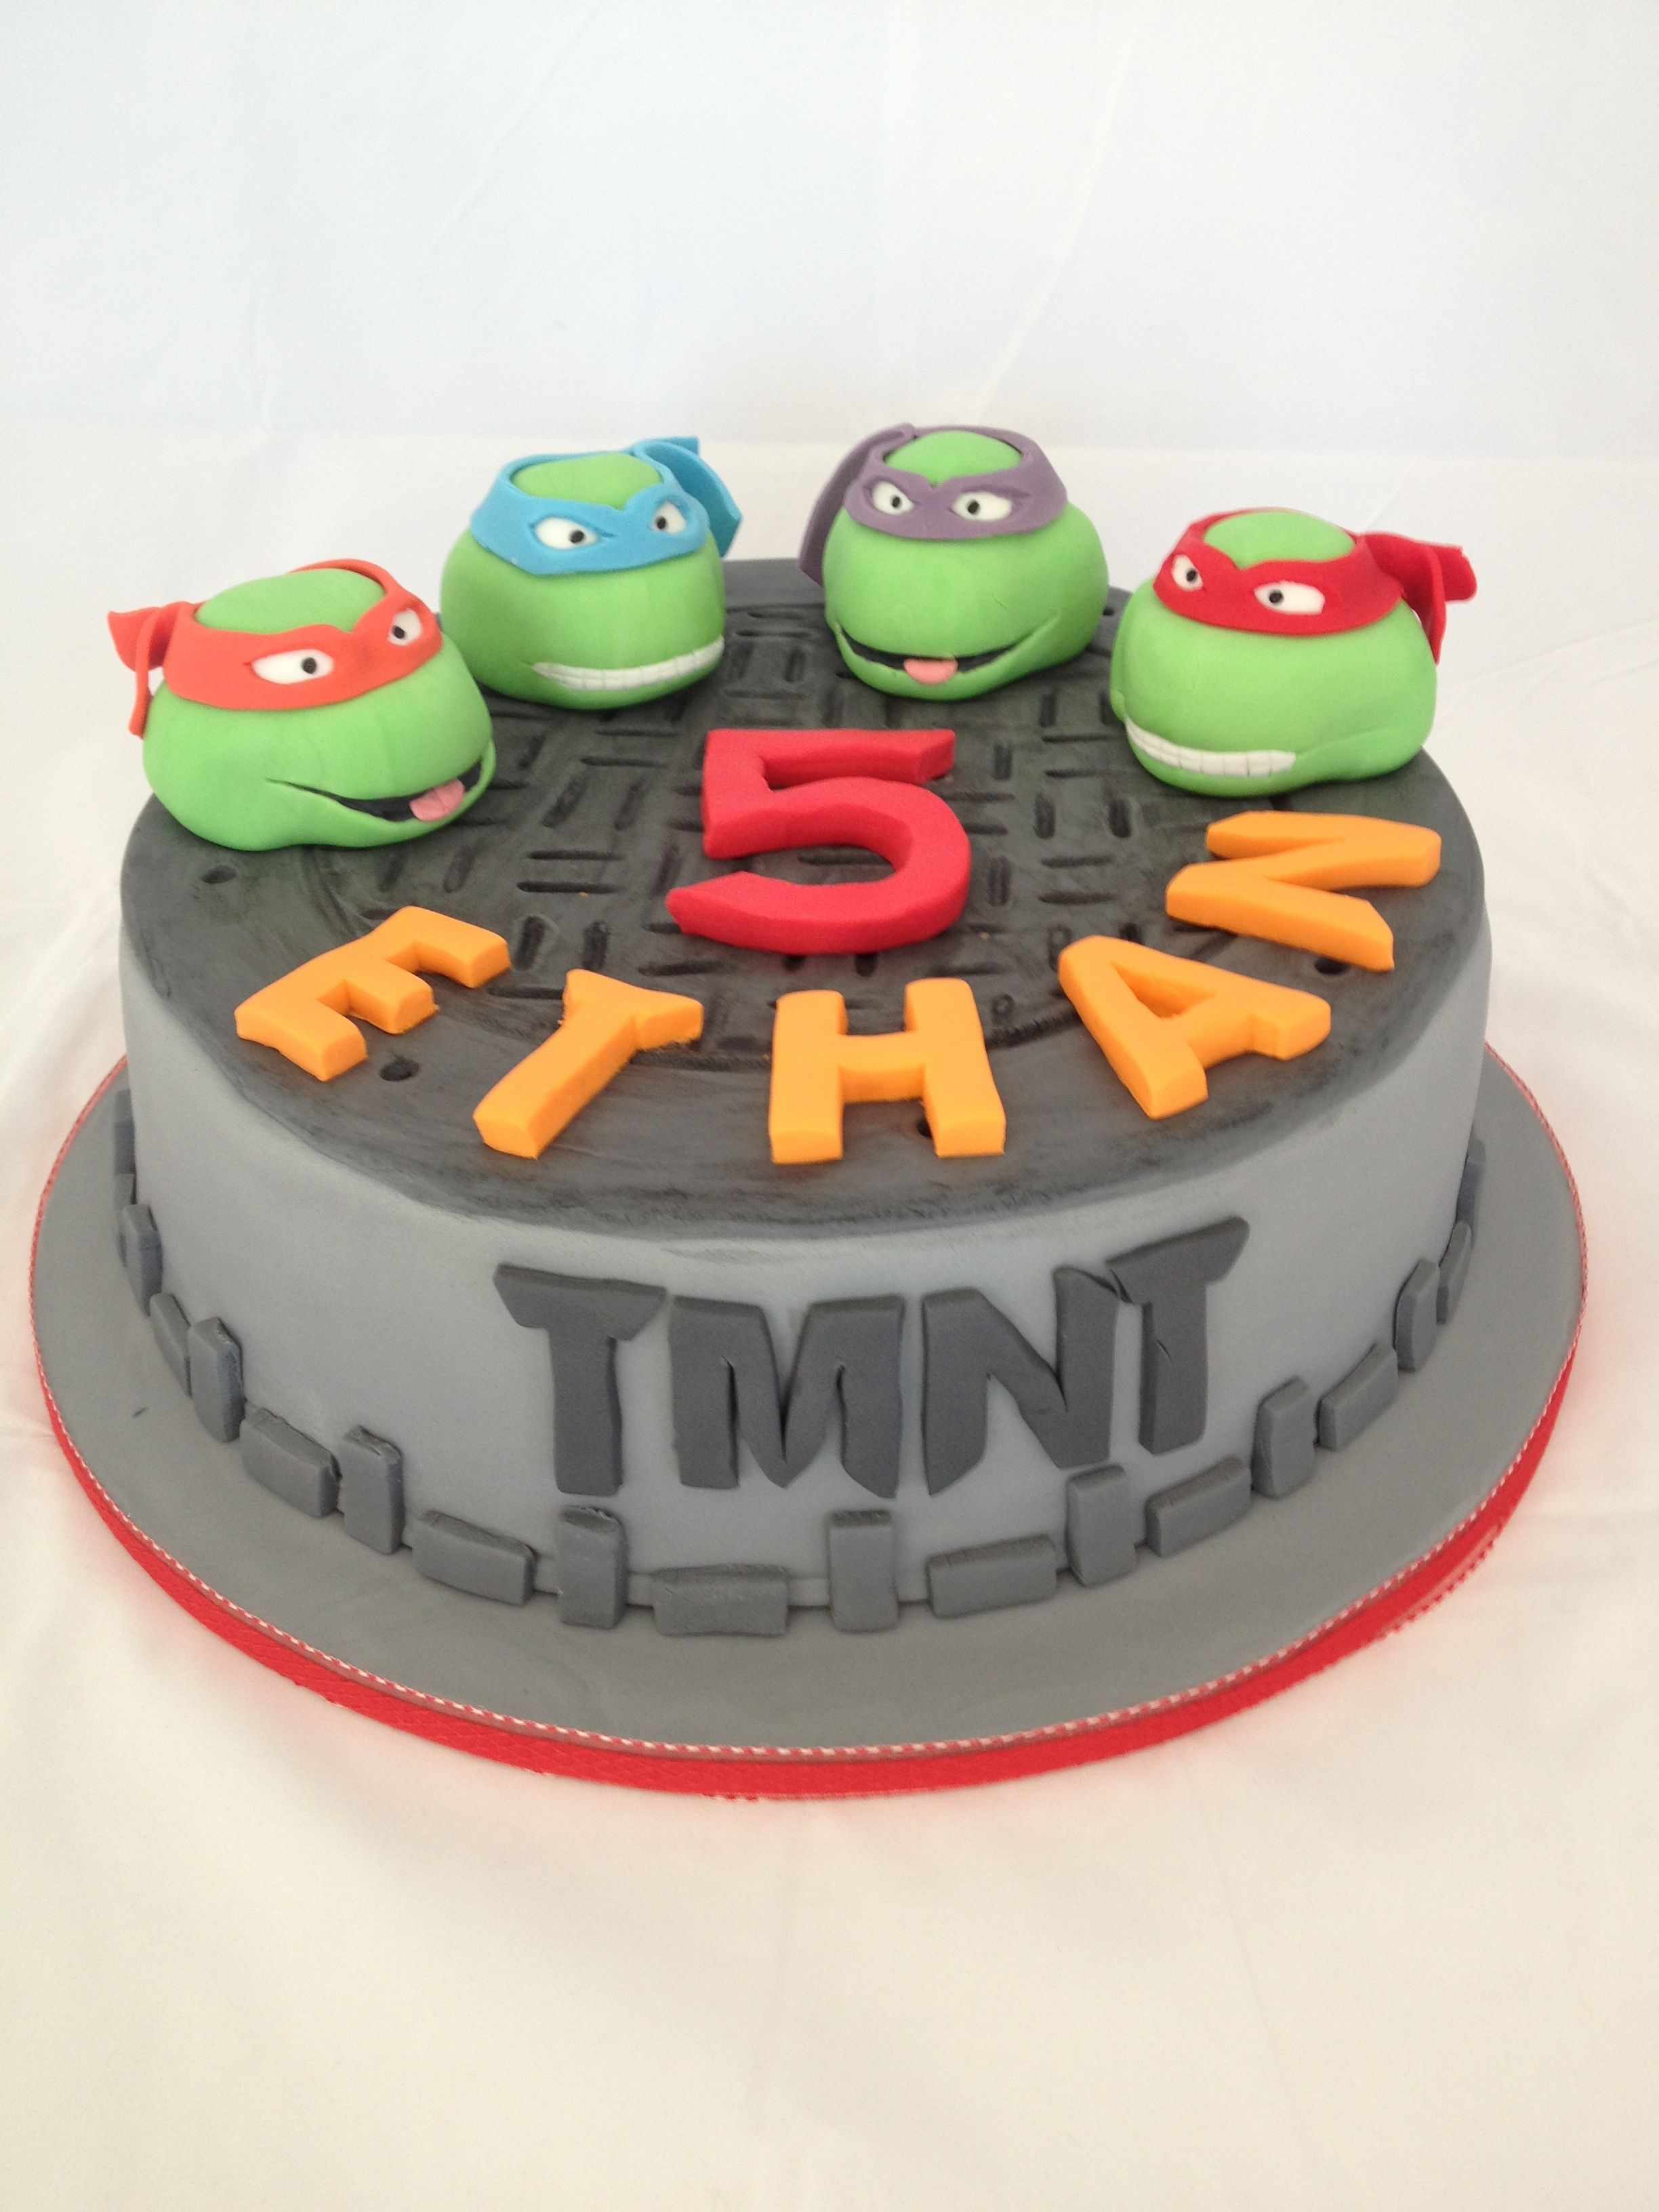 Ninja Turtle Cake For A 5 Year Old Boy The Cake Is Choc Mud With